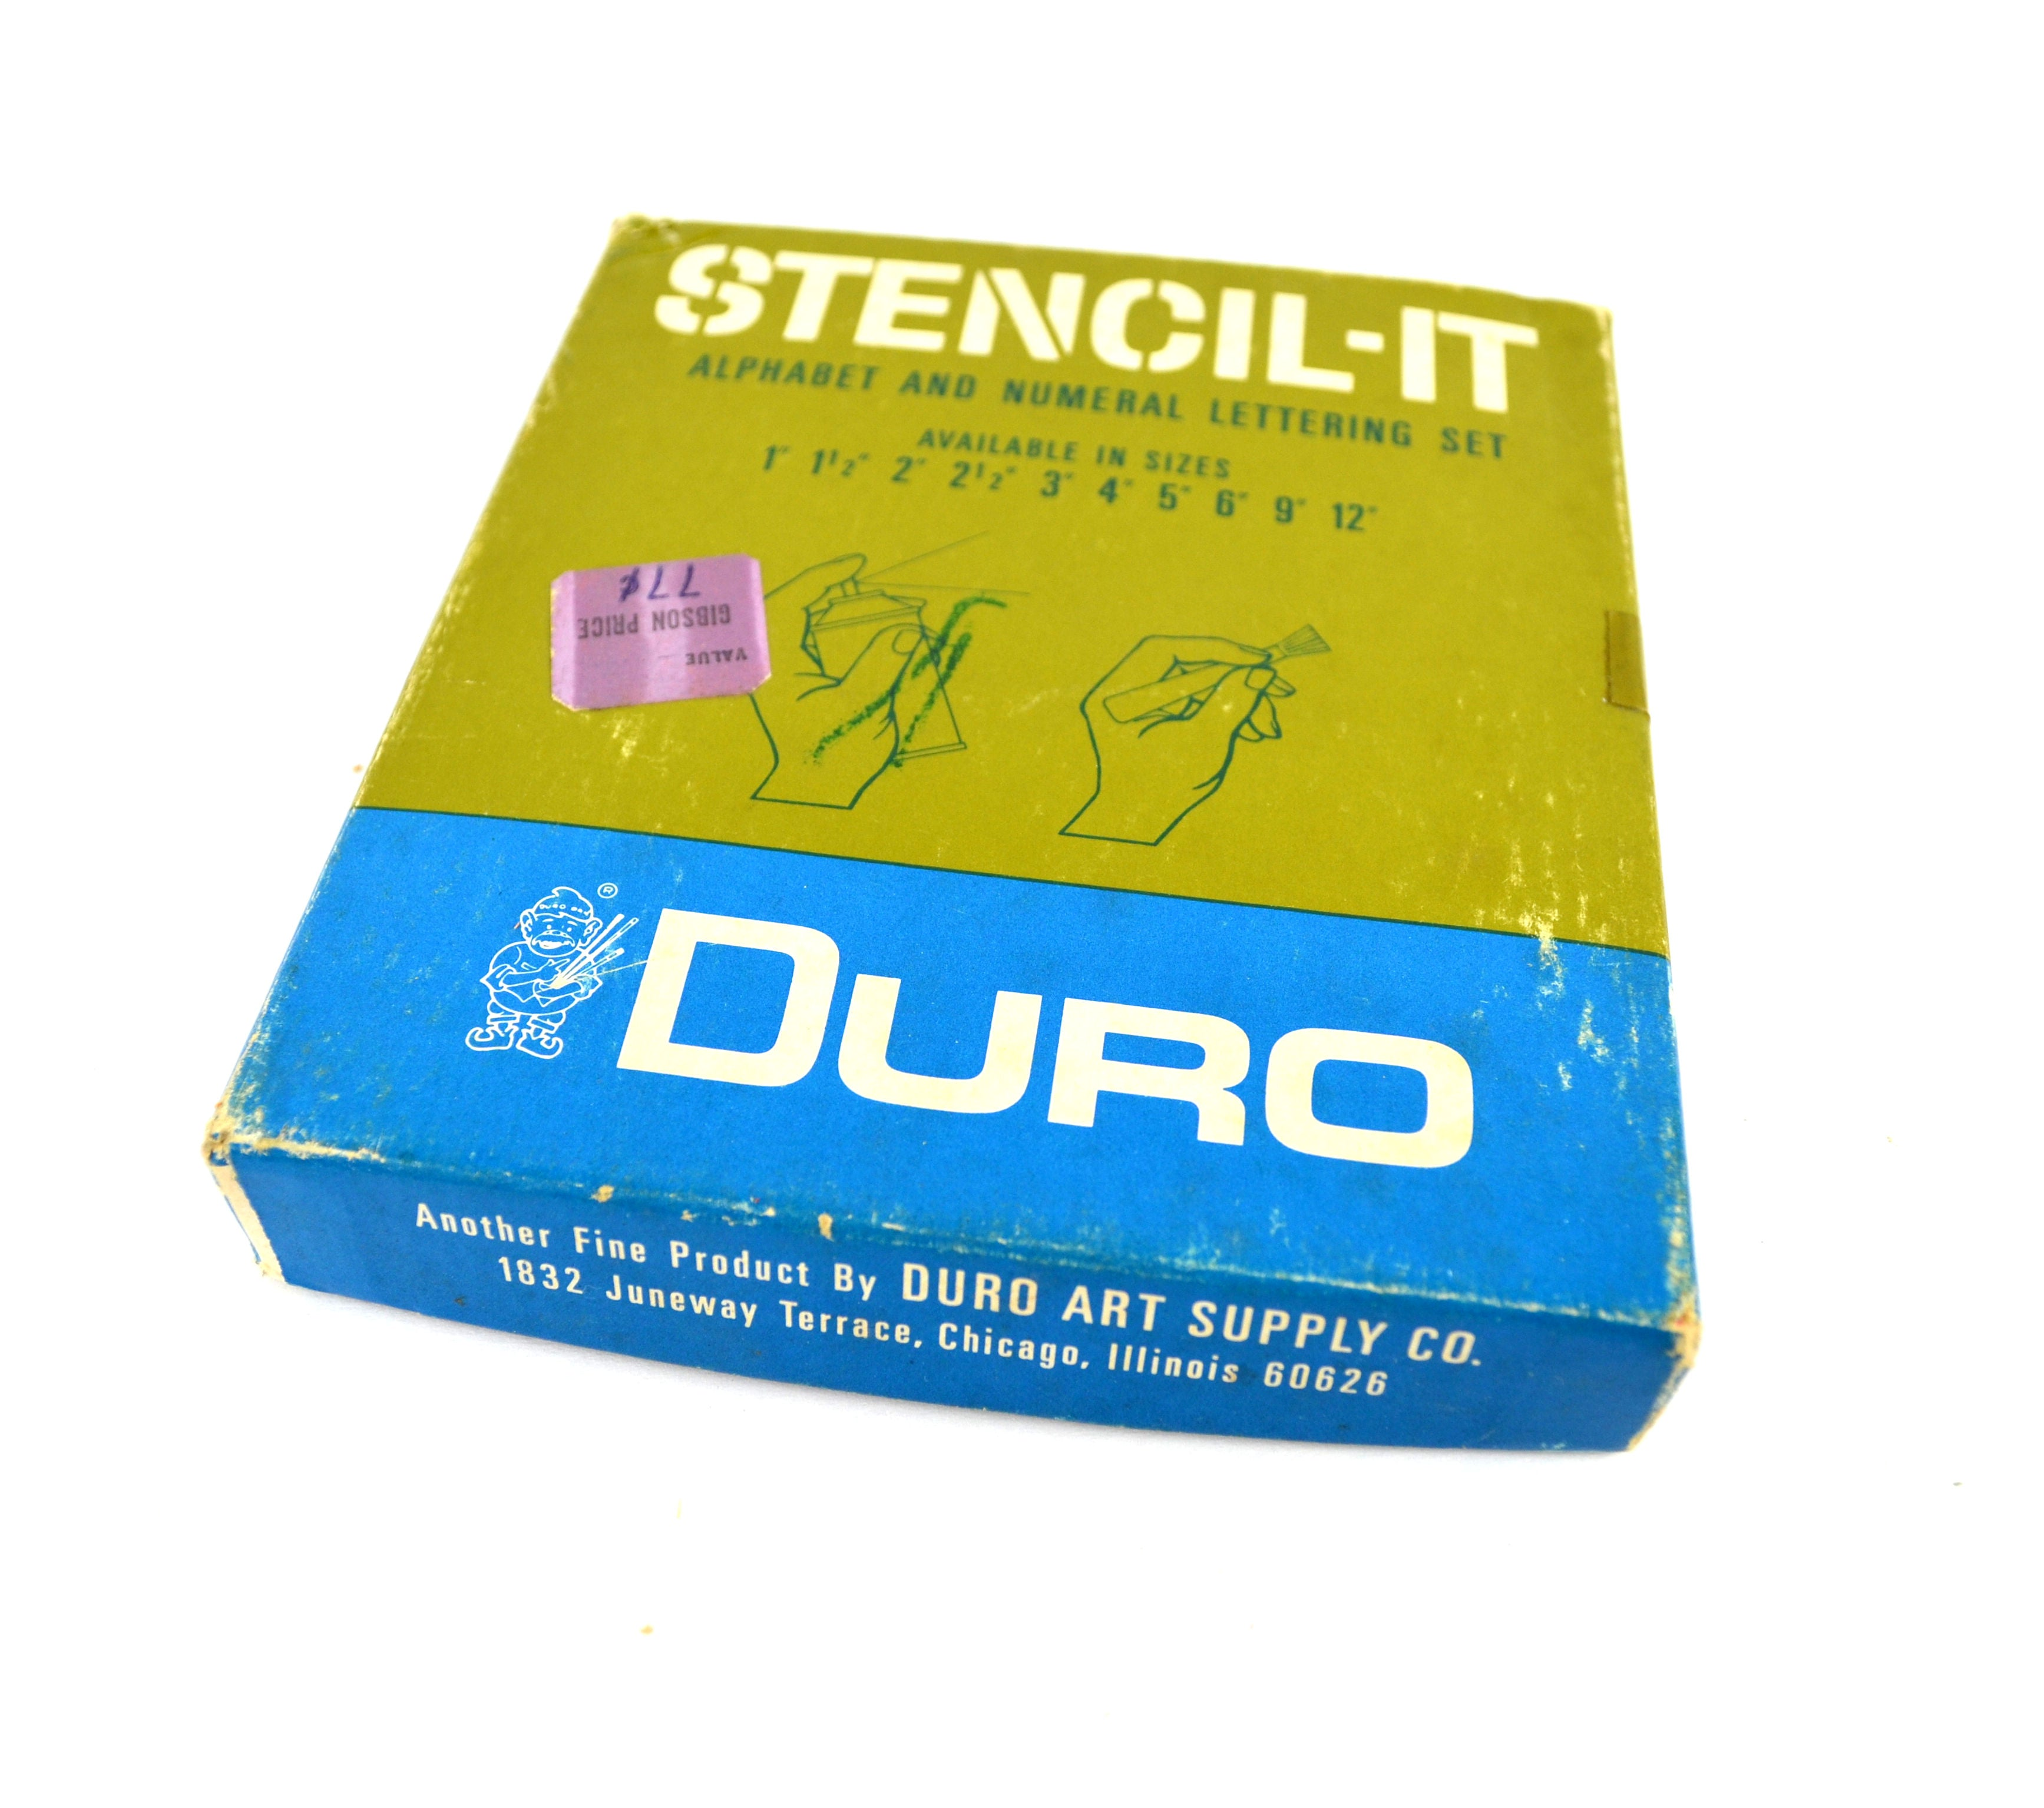 Duro Stencils Vintage Alphabet Letters and Numbers Boxed Numeral and  Lettering Set Unused